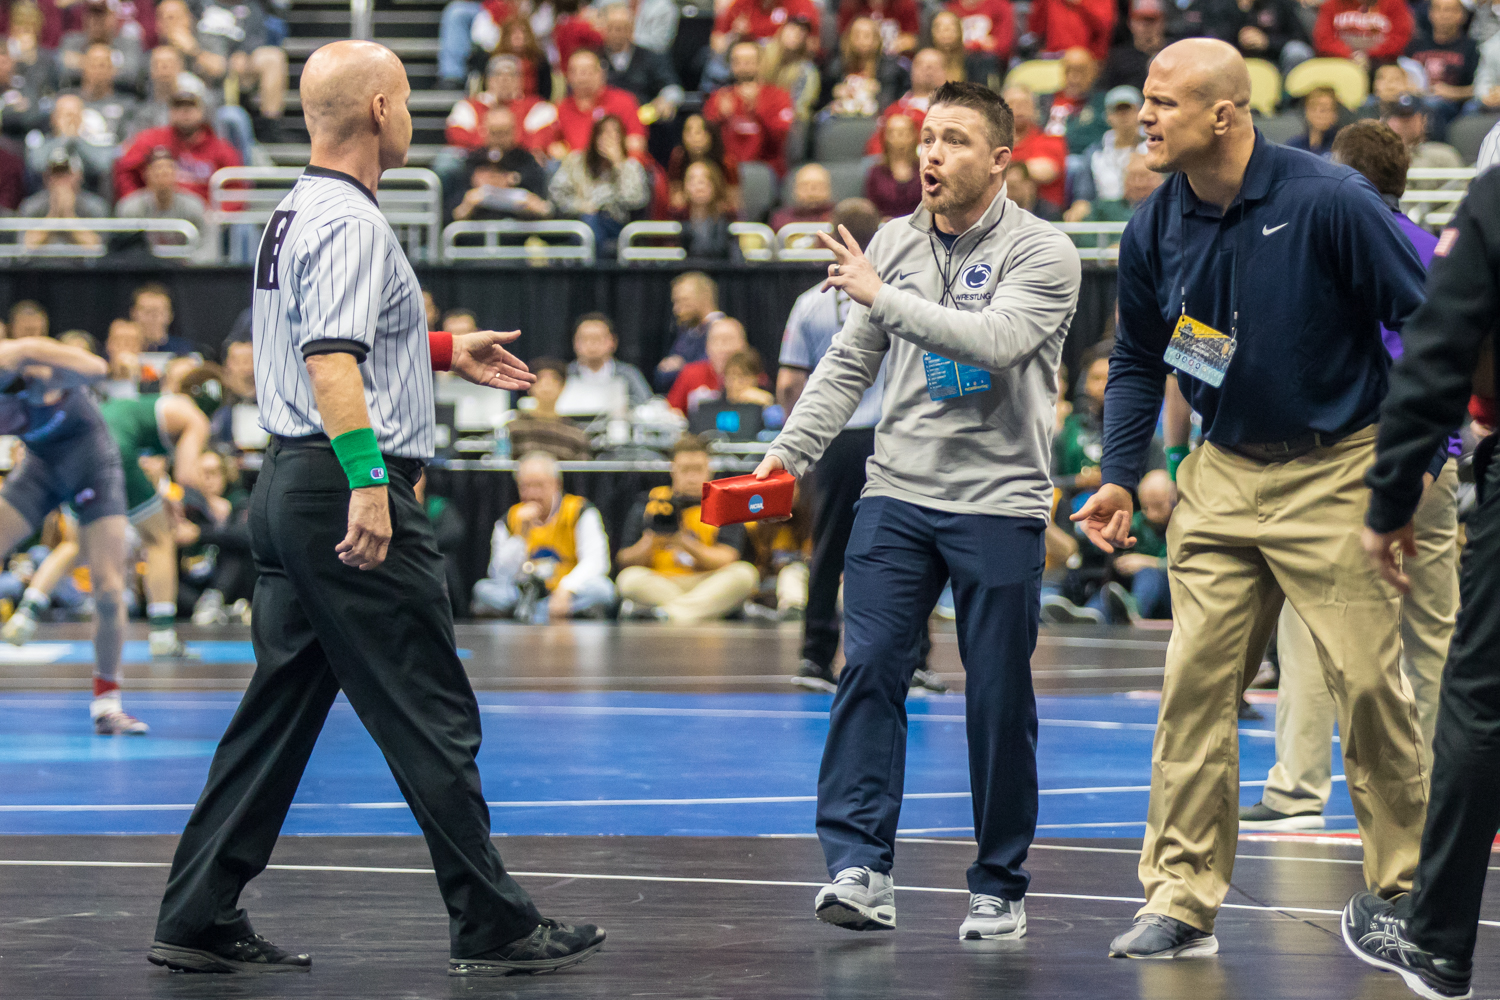 Penn+State+coaches+challenge+a+call+during++Roman+Bravo-Young%27s+bout+with+Iowa%27s+Austin+DeSanto+during+the+second+session+of+the+2019+NCAA+D1+Wrestling+Championships+at+PPG+Paints+Arena+in+Pittsburgh%2C+PA+on+Thursday%2C+March+21%2C+2019.+DeSanto+won+by+decision%2C+7-2.